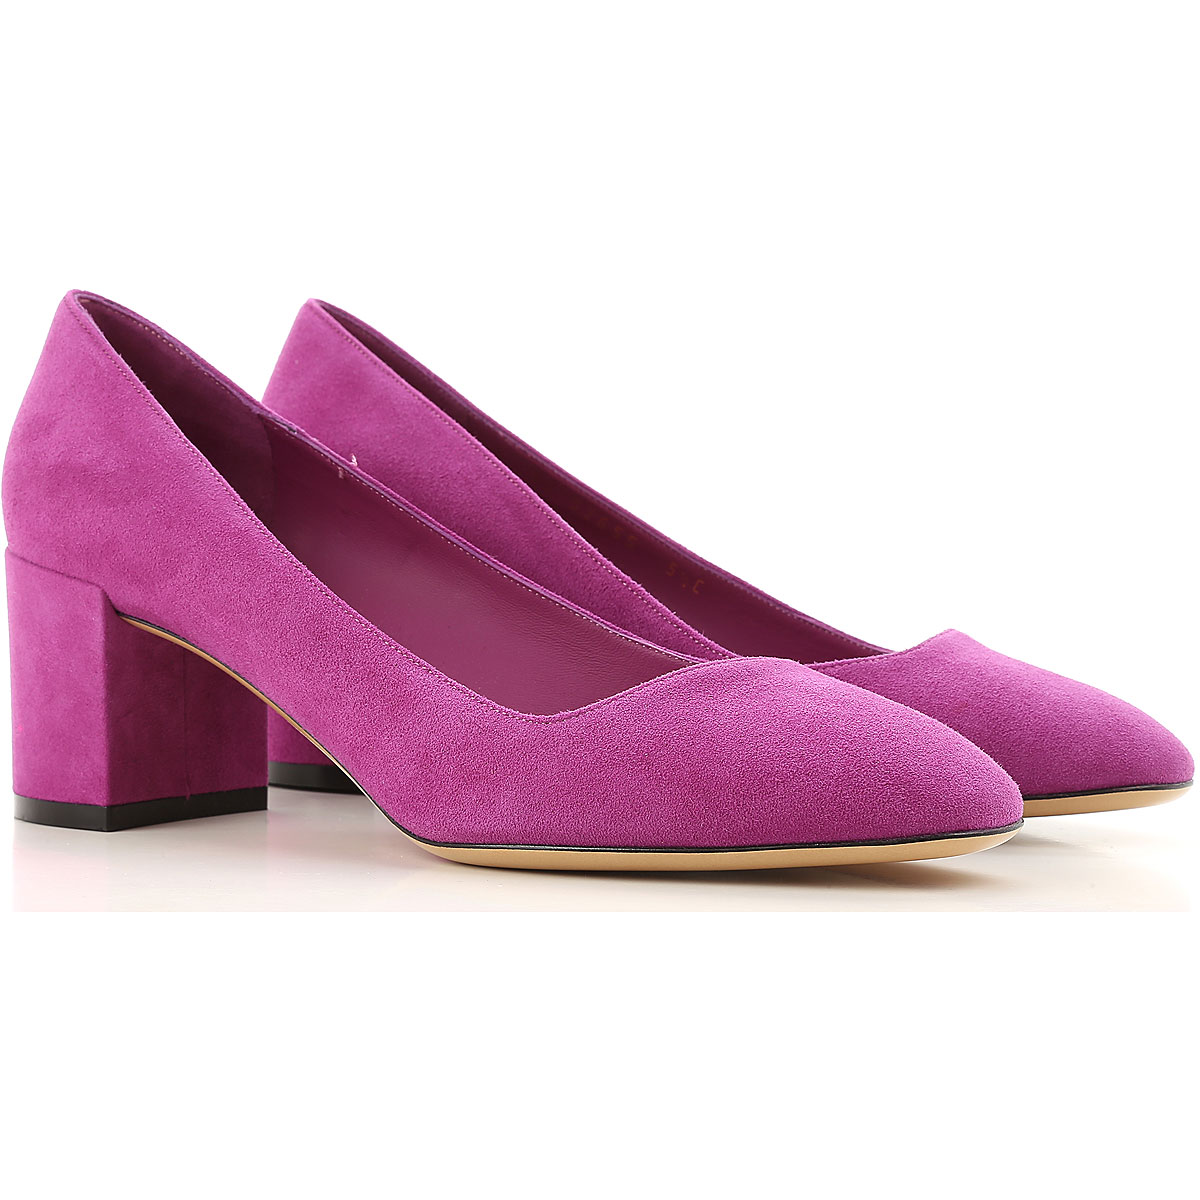 Salvatore Ferragamo Pumps & High Heels for Women On Sale in Outlet, Magenta, Suede leather, 2019, 5.5 6.5